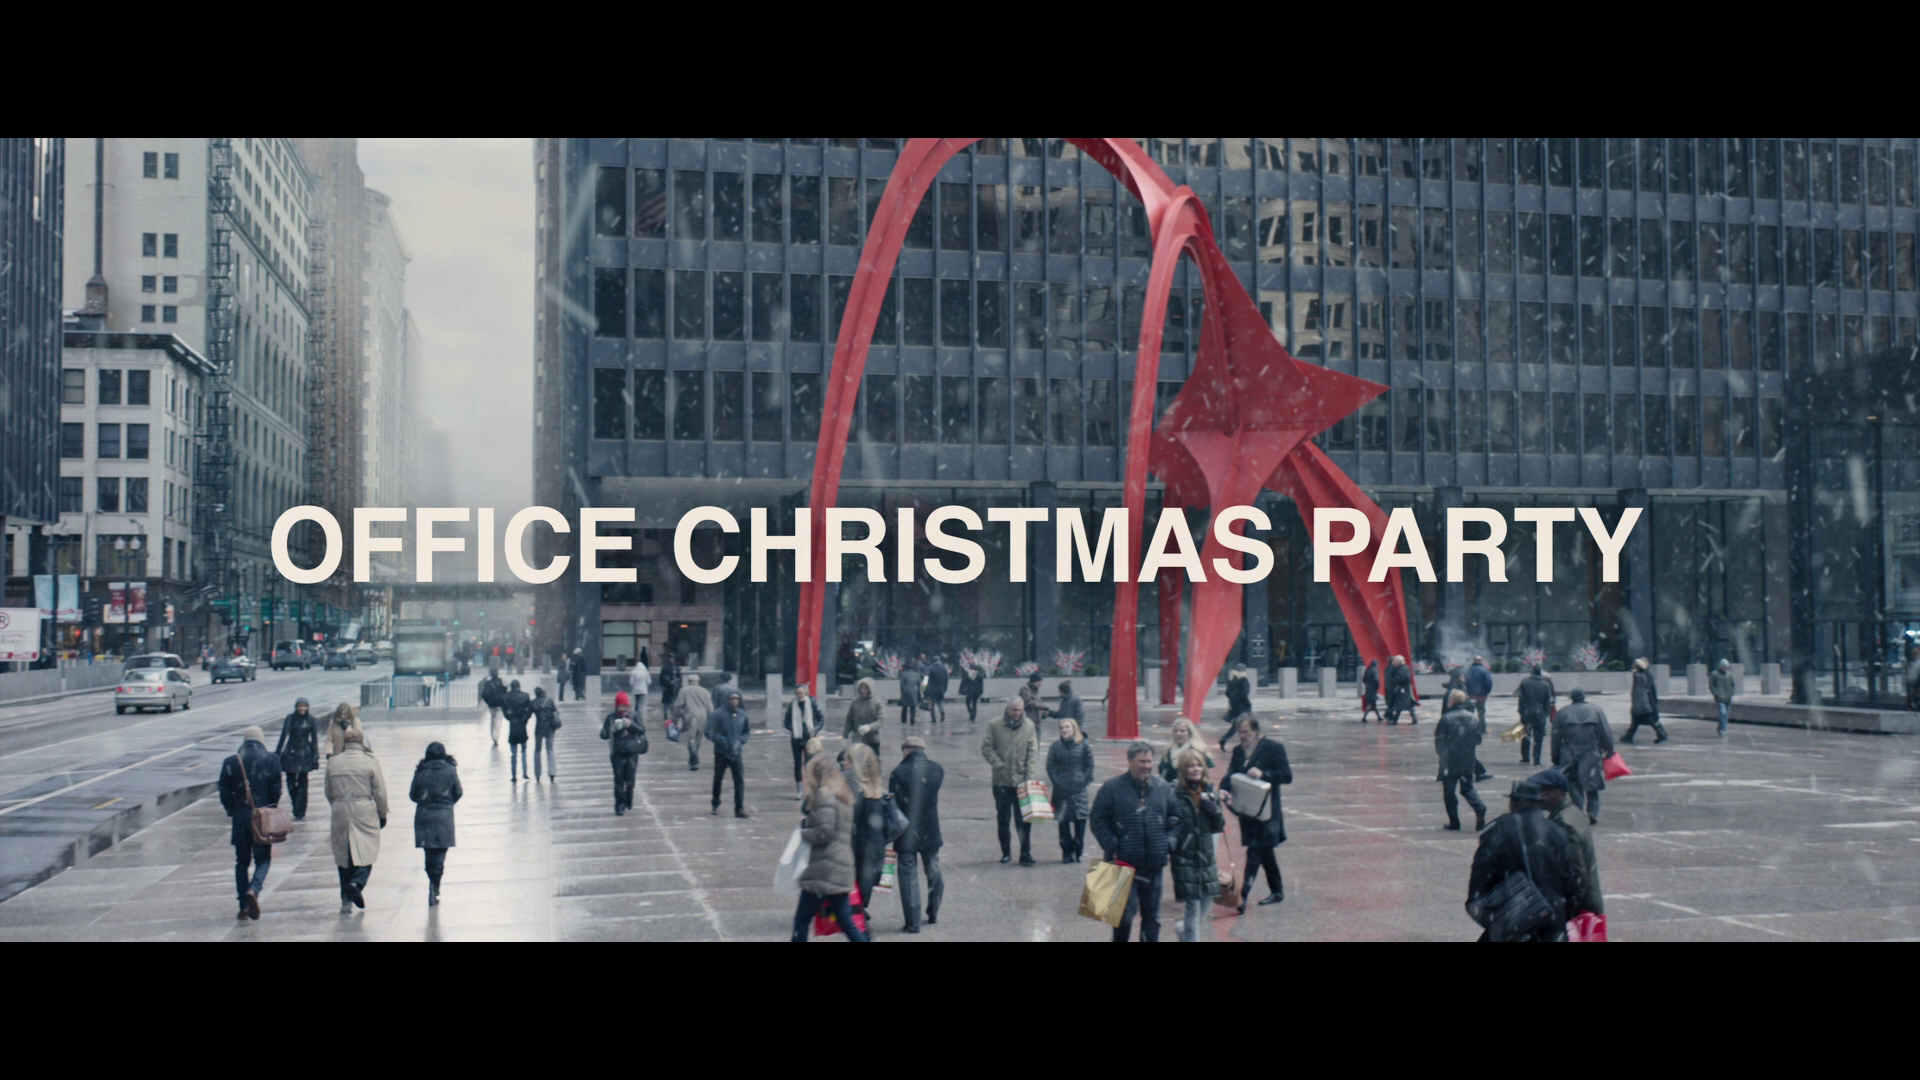 Office Christmas Party (Blu-ray) : DVD Talk Review of the Blu-ray